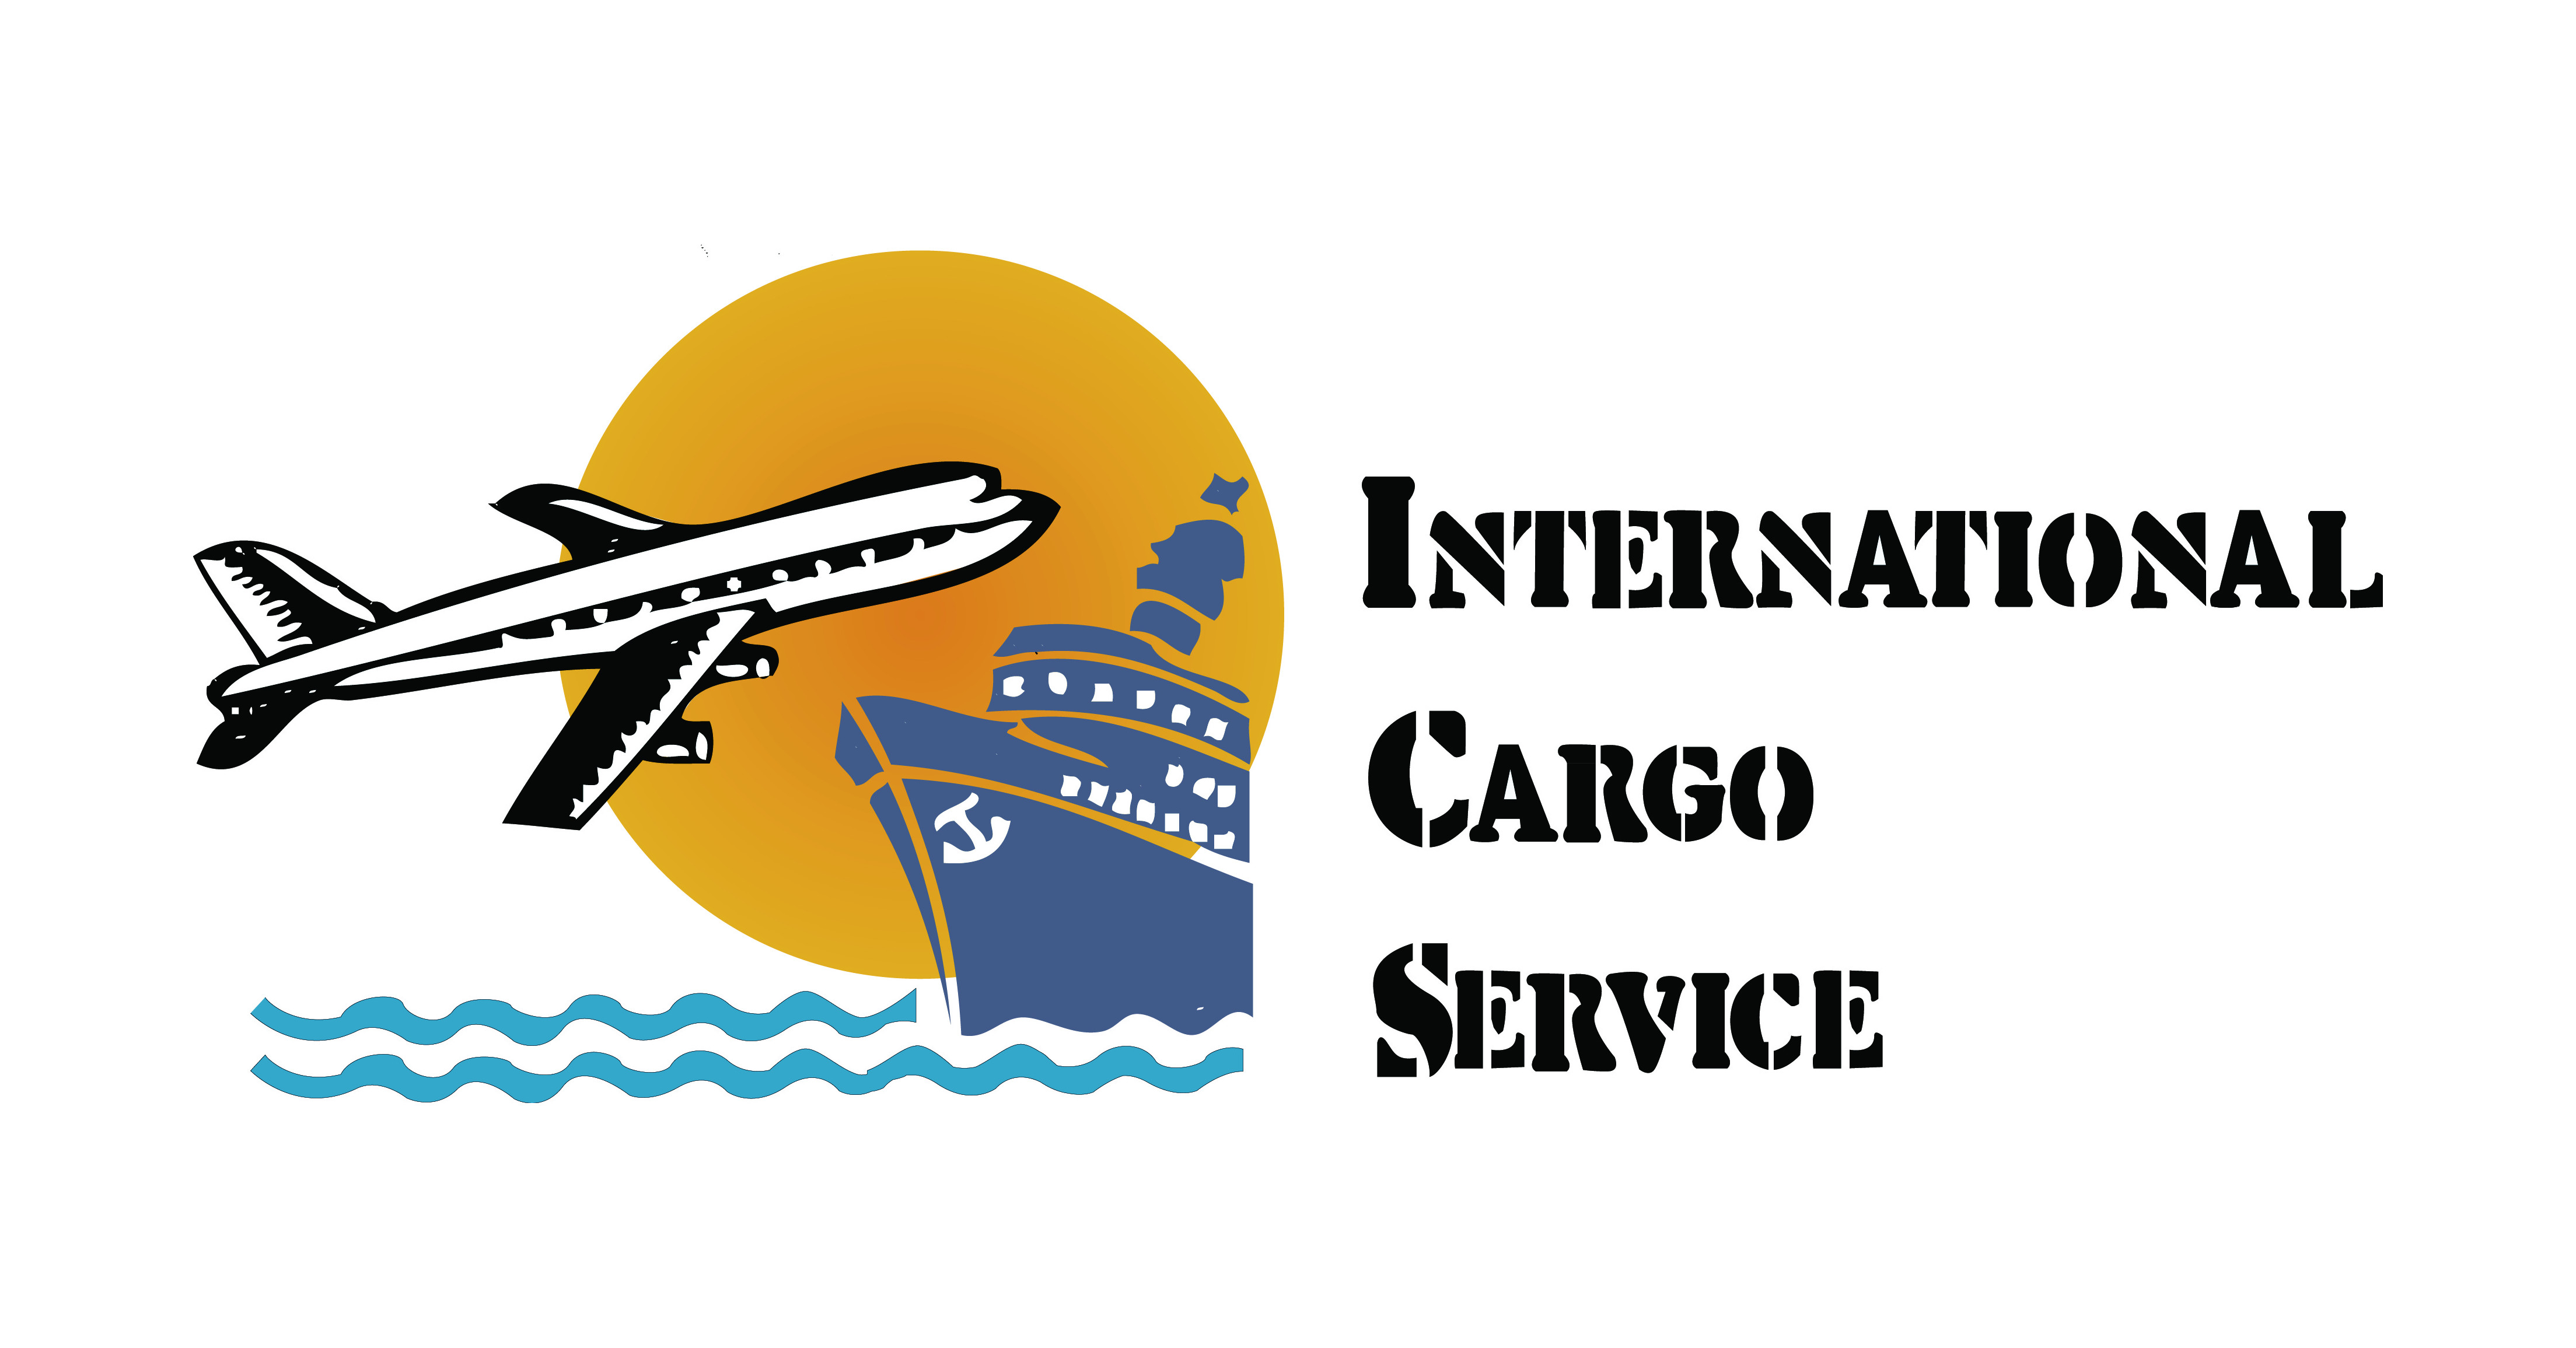 Job: Sales Agent at International Cargo services in Cairo